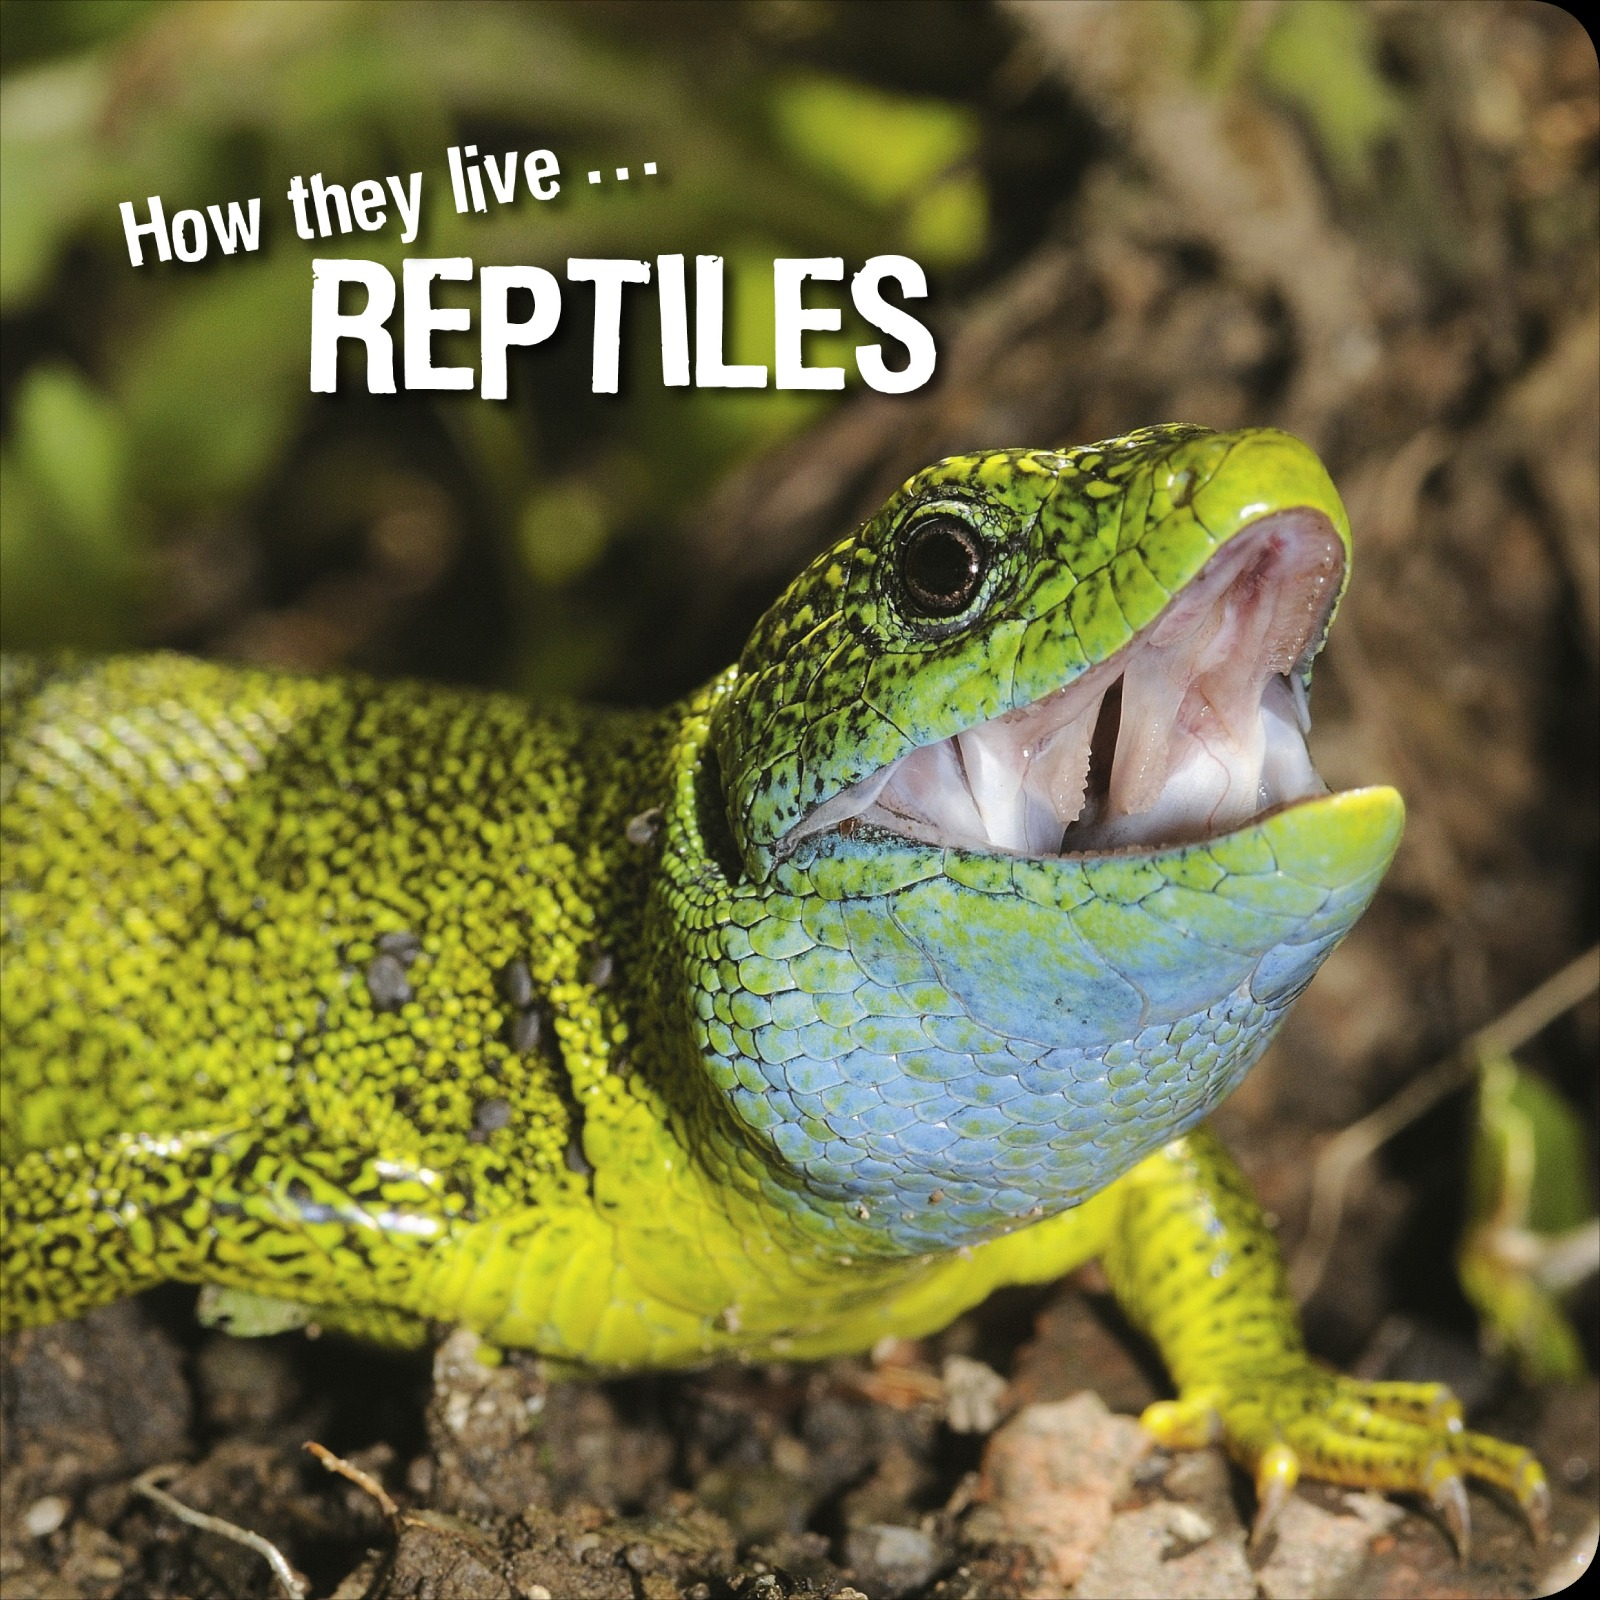 How they live... Reptiles